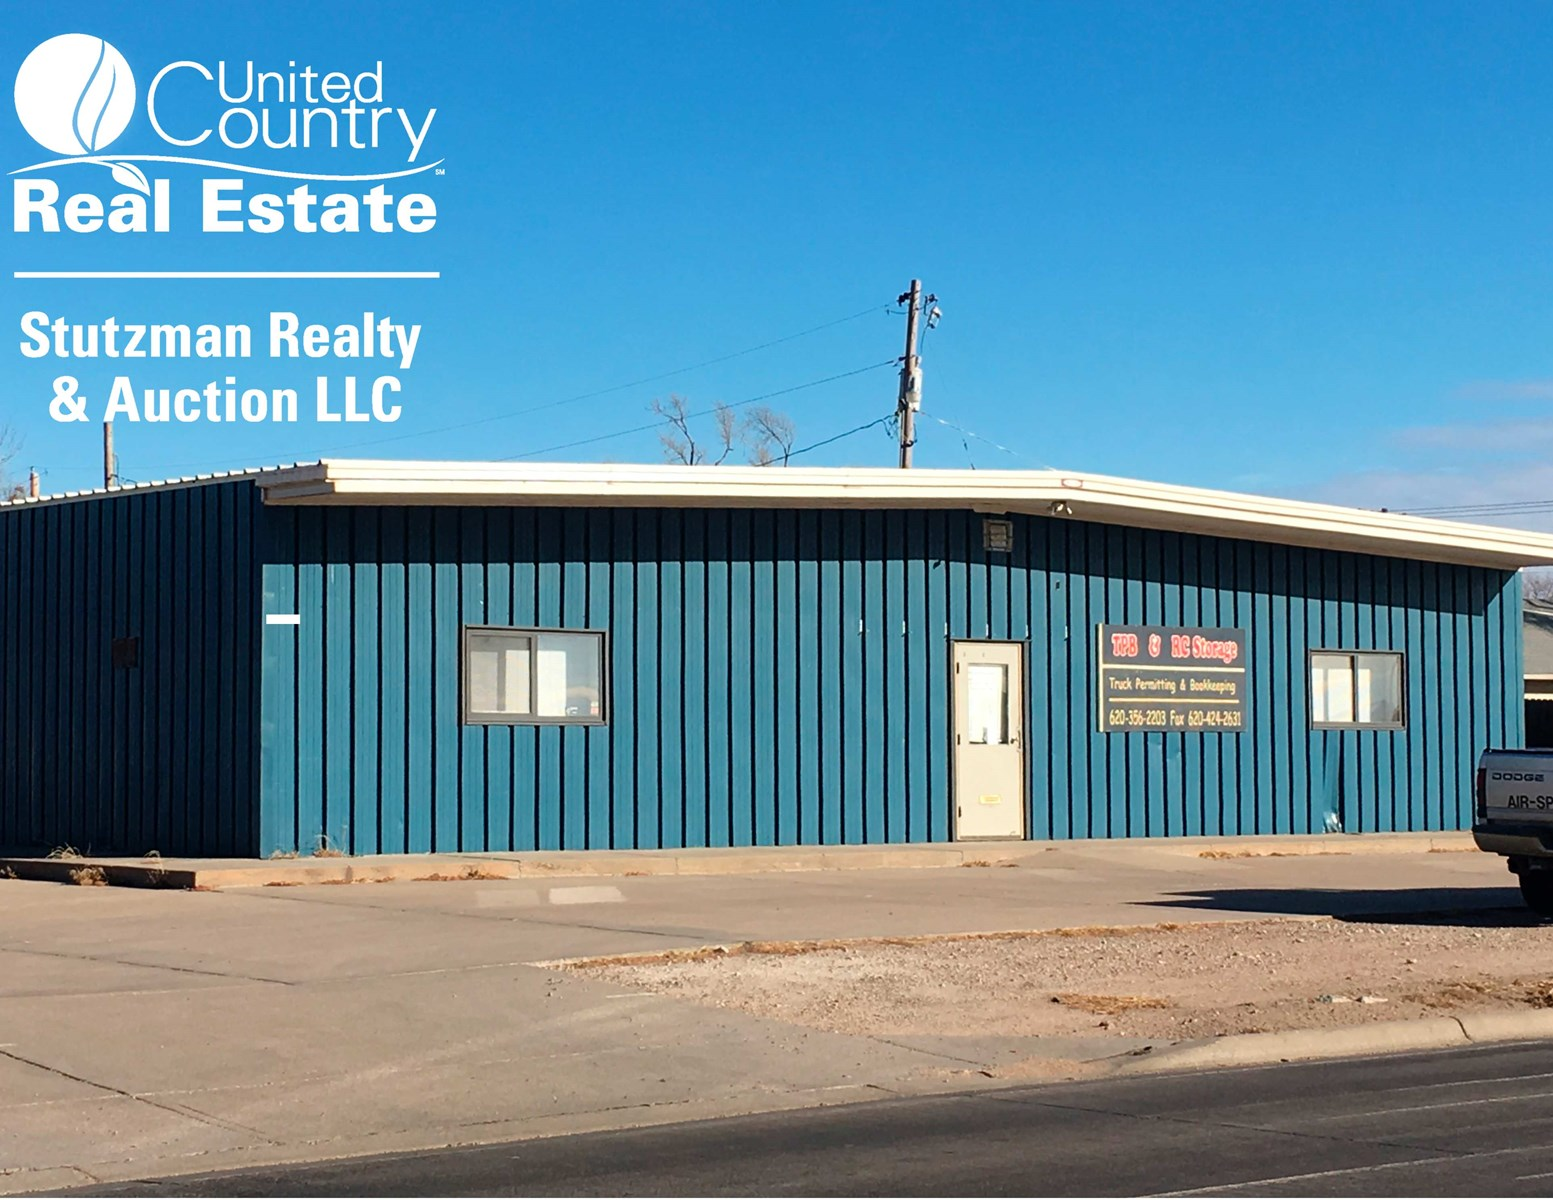 INVESTMENT OPPORTUNITY DELUXE FOR SALE IN ULYSSES, KANSAS